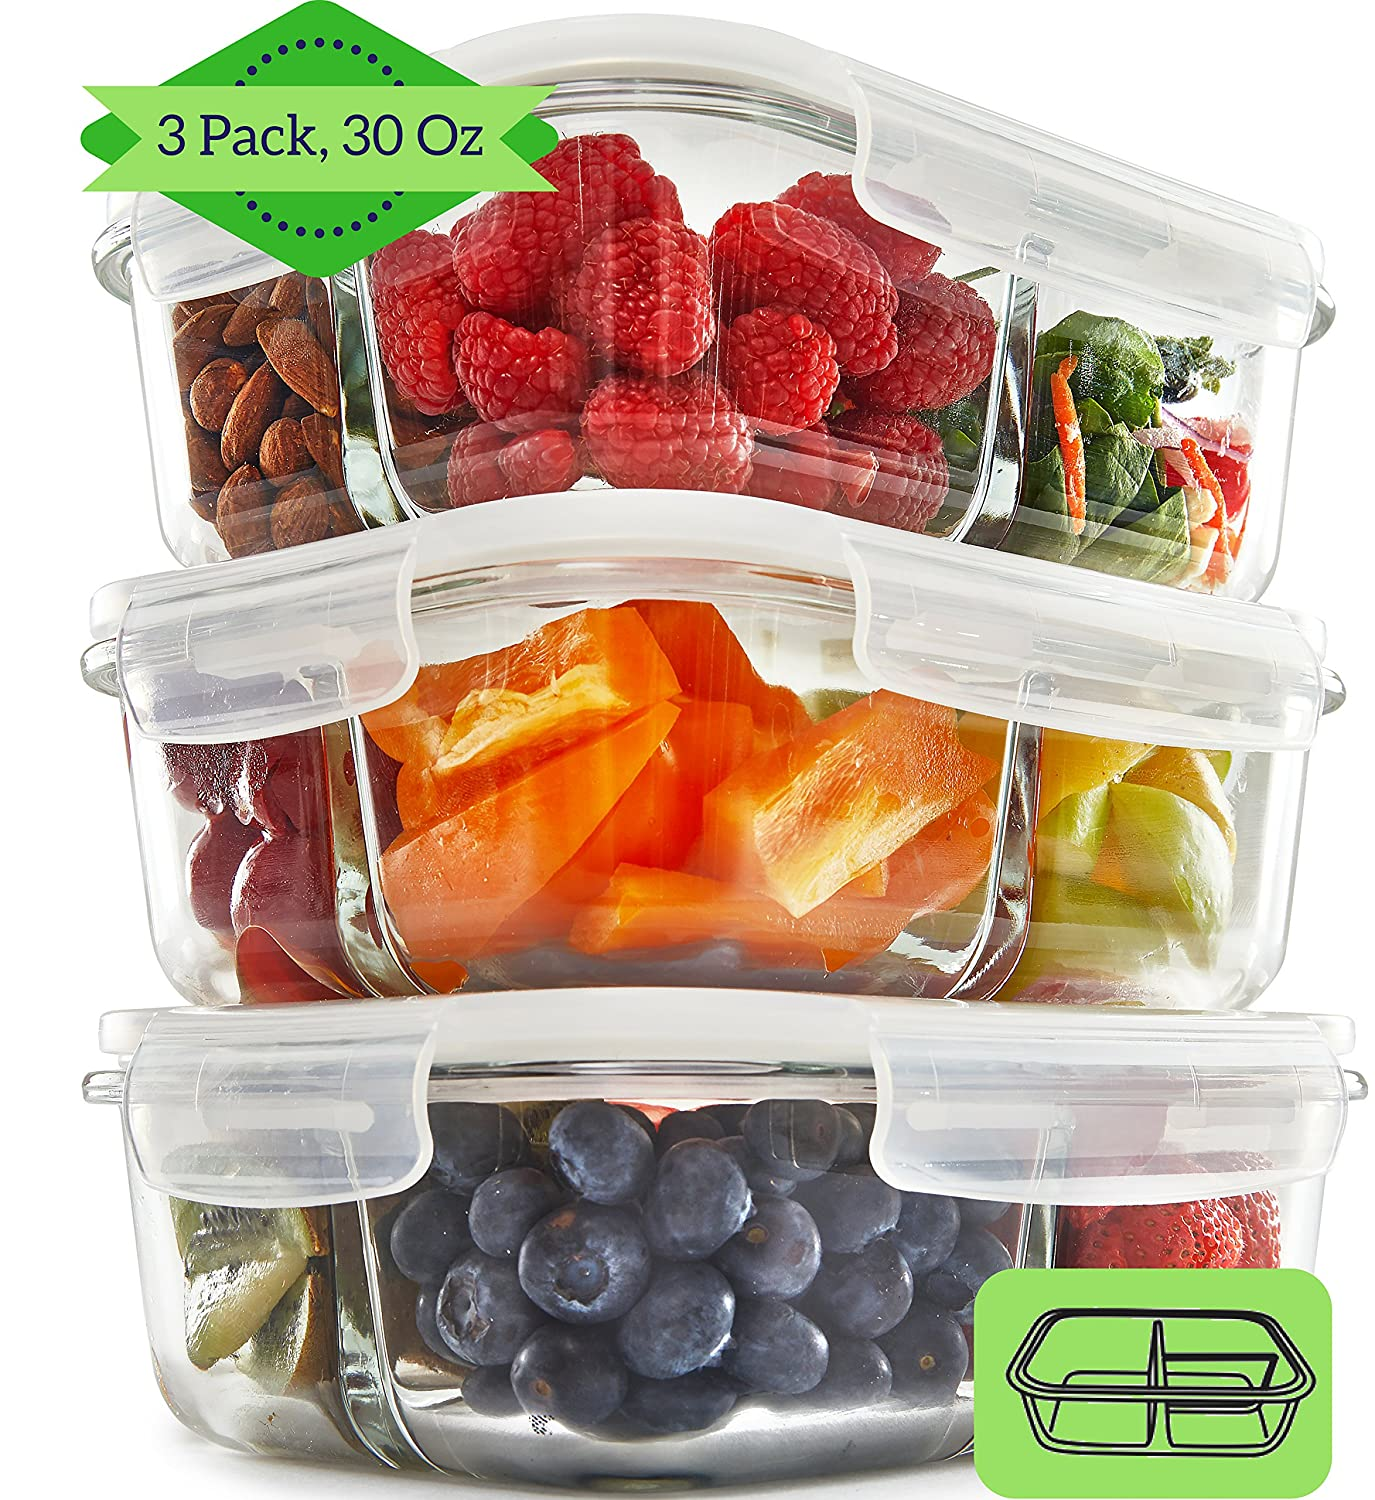 3 Compartment Glass Meal Prep Containers (3 Pack) - Food Storage Containers with Vented Lids | Glass Set | Leakproof Food Prep Containers | Portion Control Food Containers | Bento Lunch Box Fit Strong & Healthy